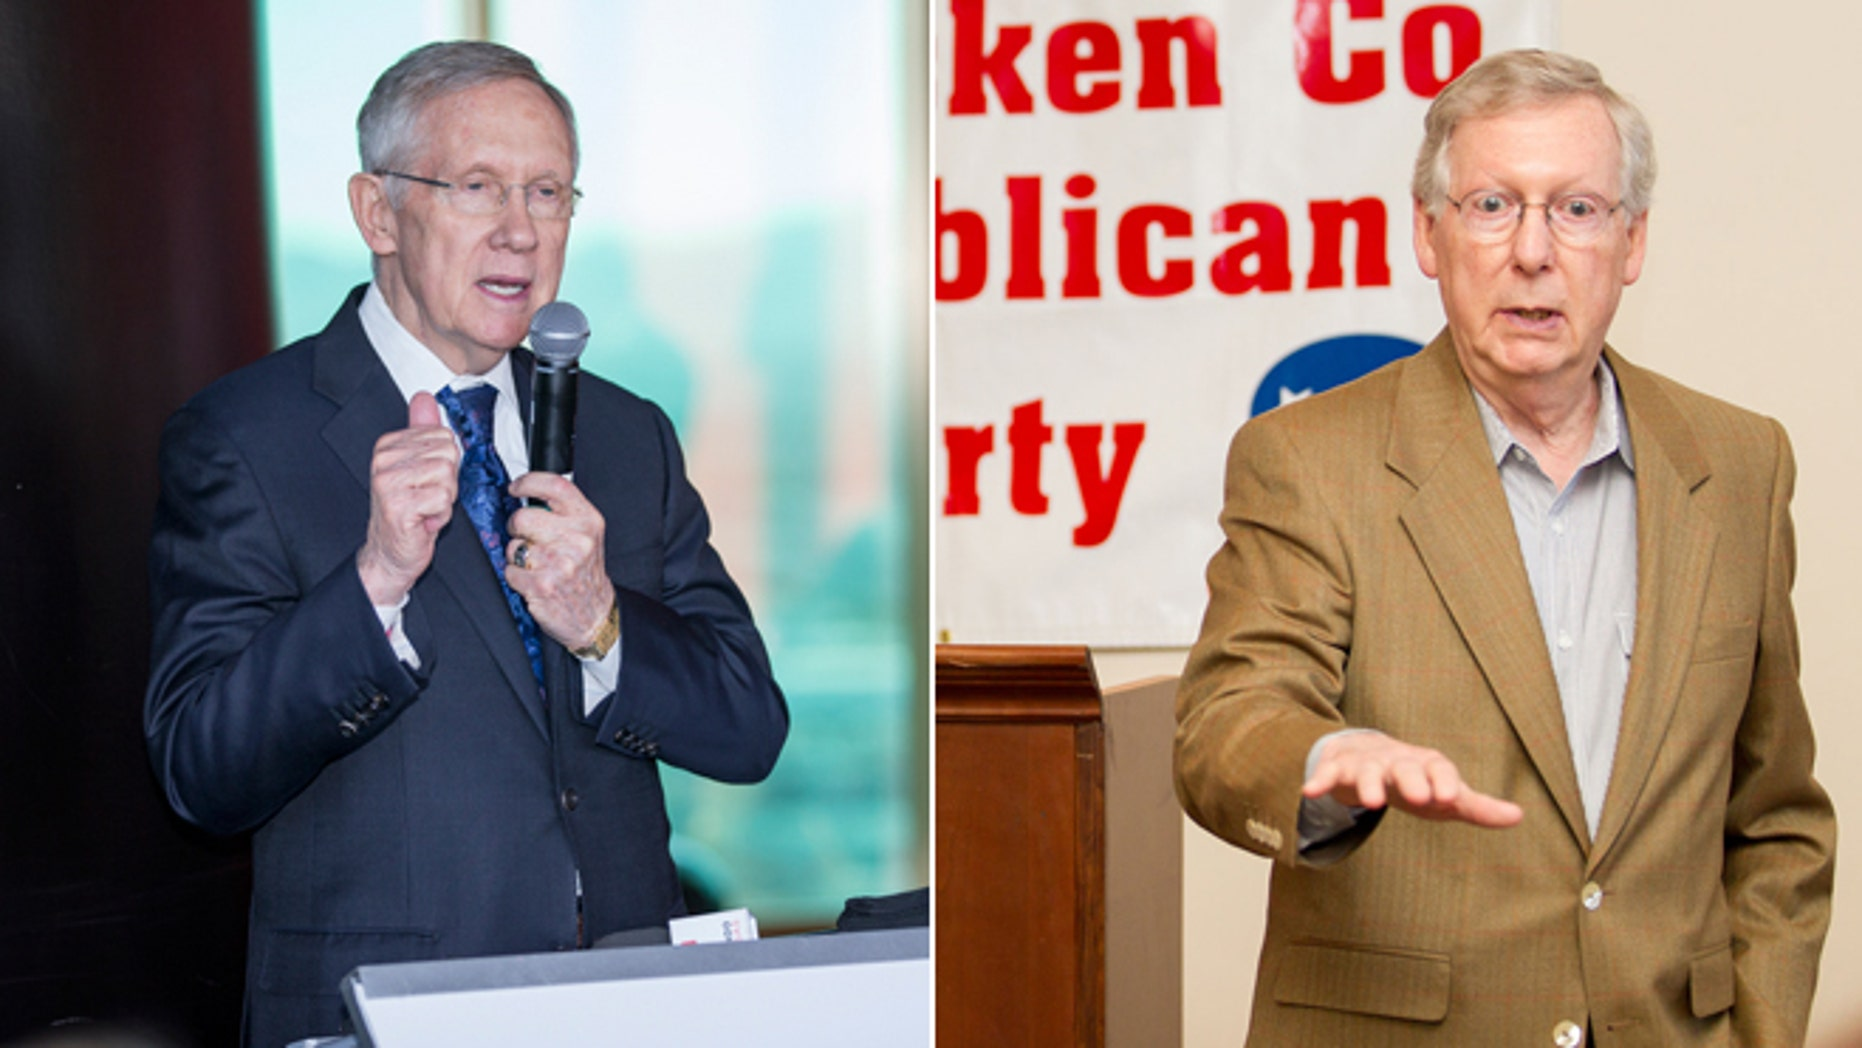 In this Monday, Oct. 27, 2014, Senator Harry Reid speaks before the revealing of the world's largest rooftop solar array in Las Vegas. and U.S. Sen. Mitch McConnell speaks in Paducah, Ky., Wednesday, Oct. 29, 2014.